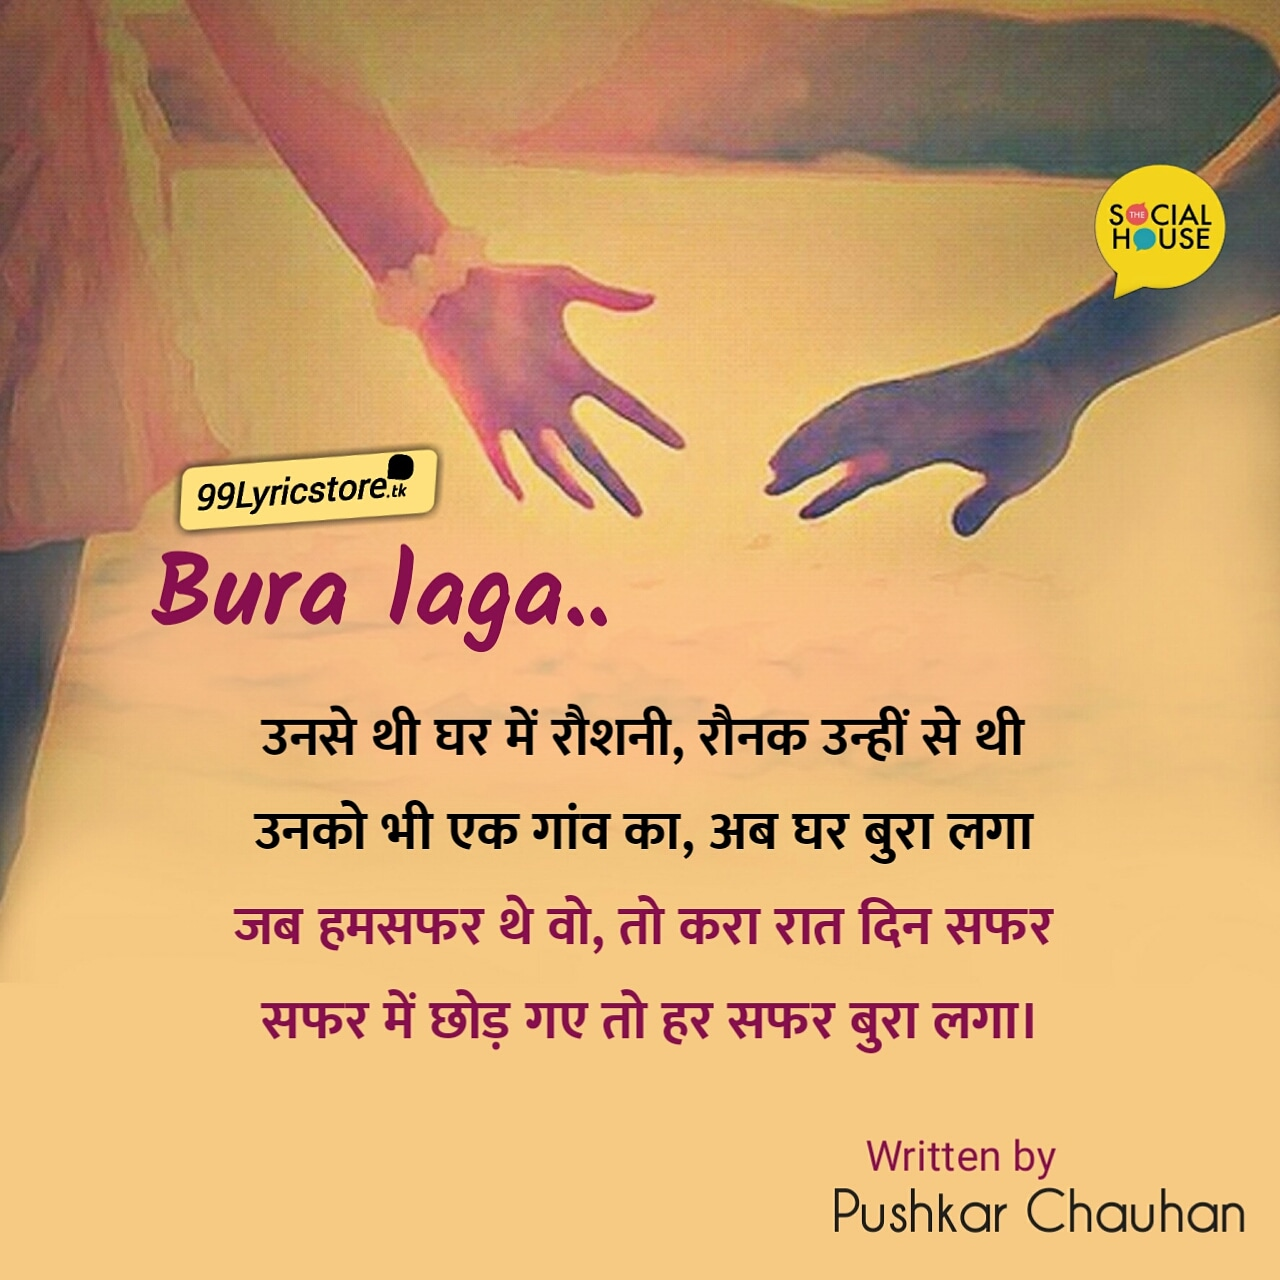 'Bura laga' is very beautiful Ghazal written and performed by Pushkar Chauhan on The Social House's Platform.